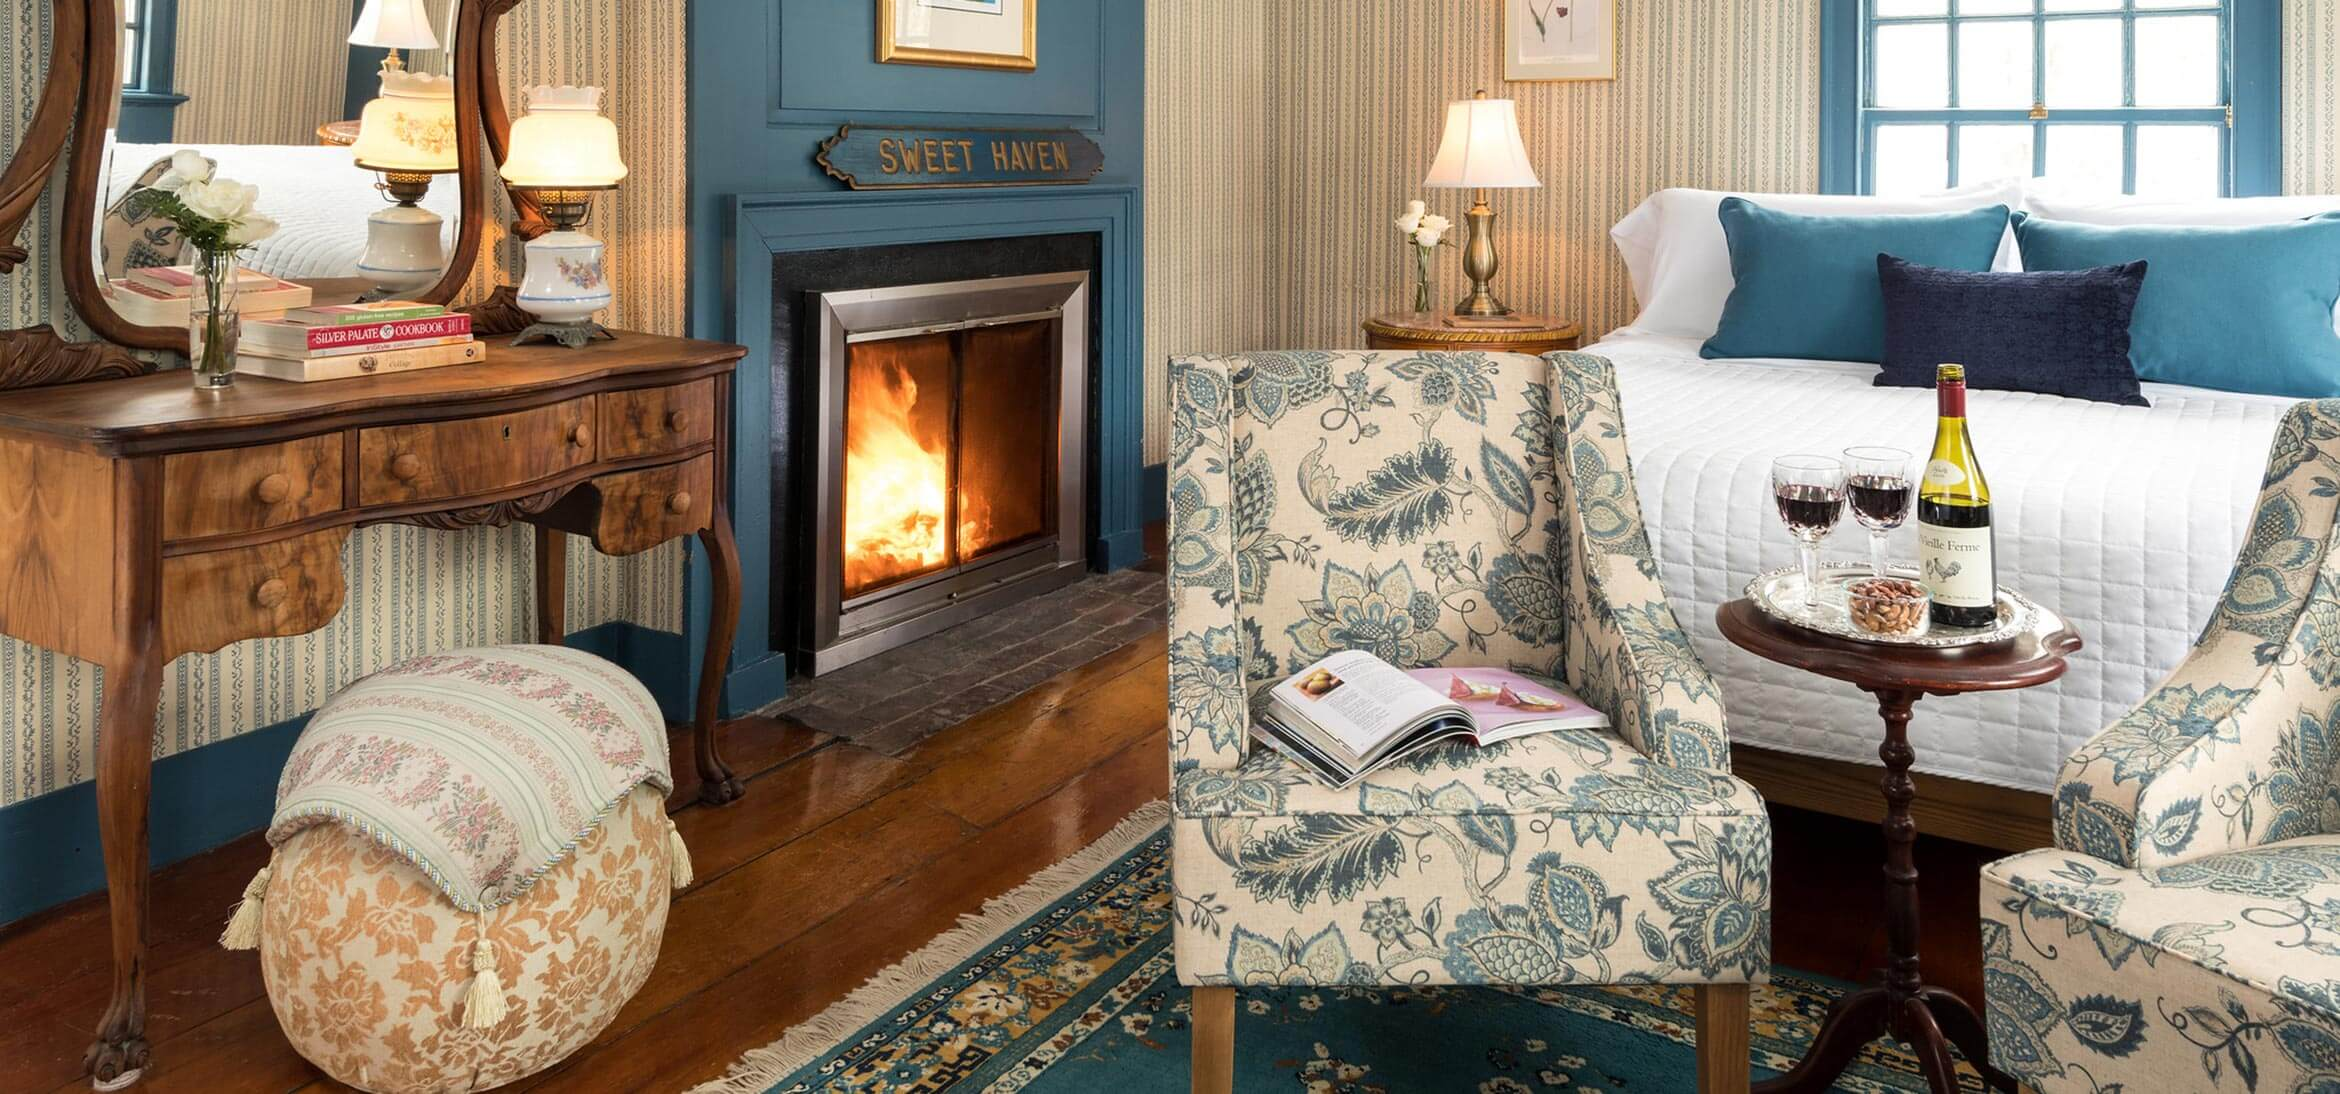 Sweet Haven Room bed, chairs and fireplace at our Kennebunkport, Maine B&B